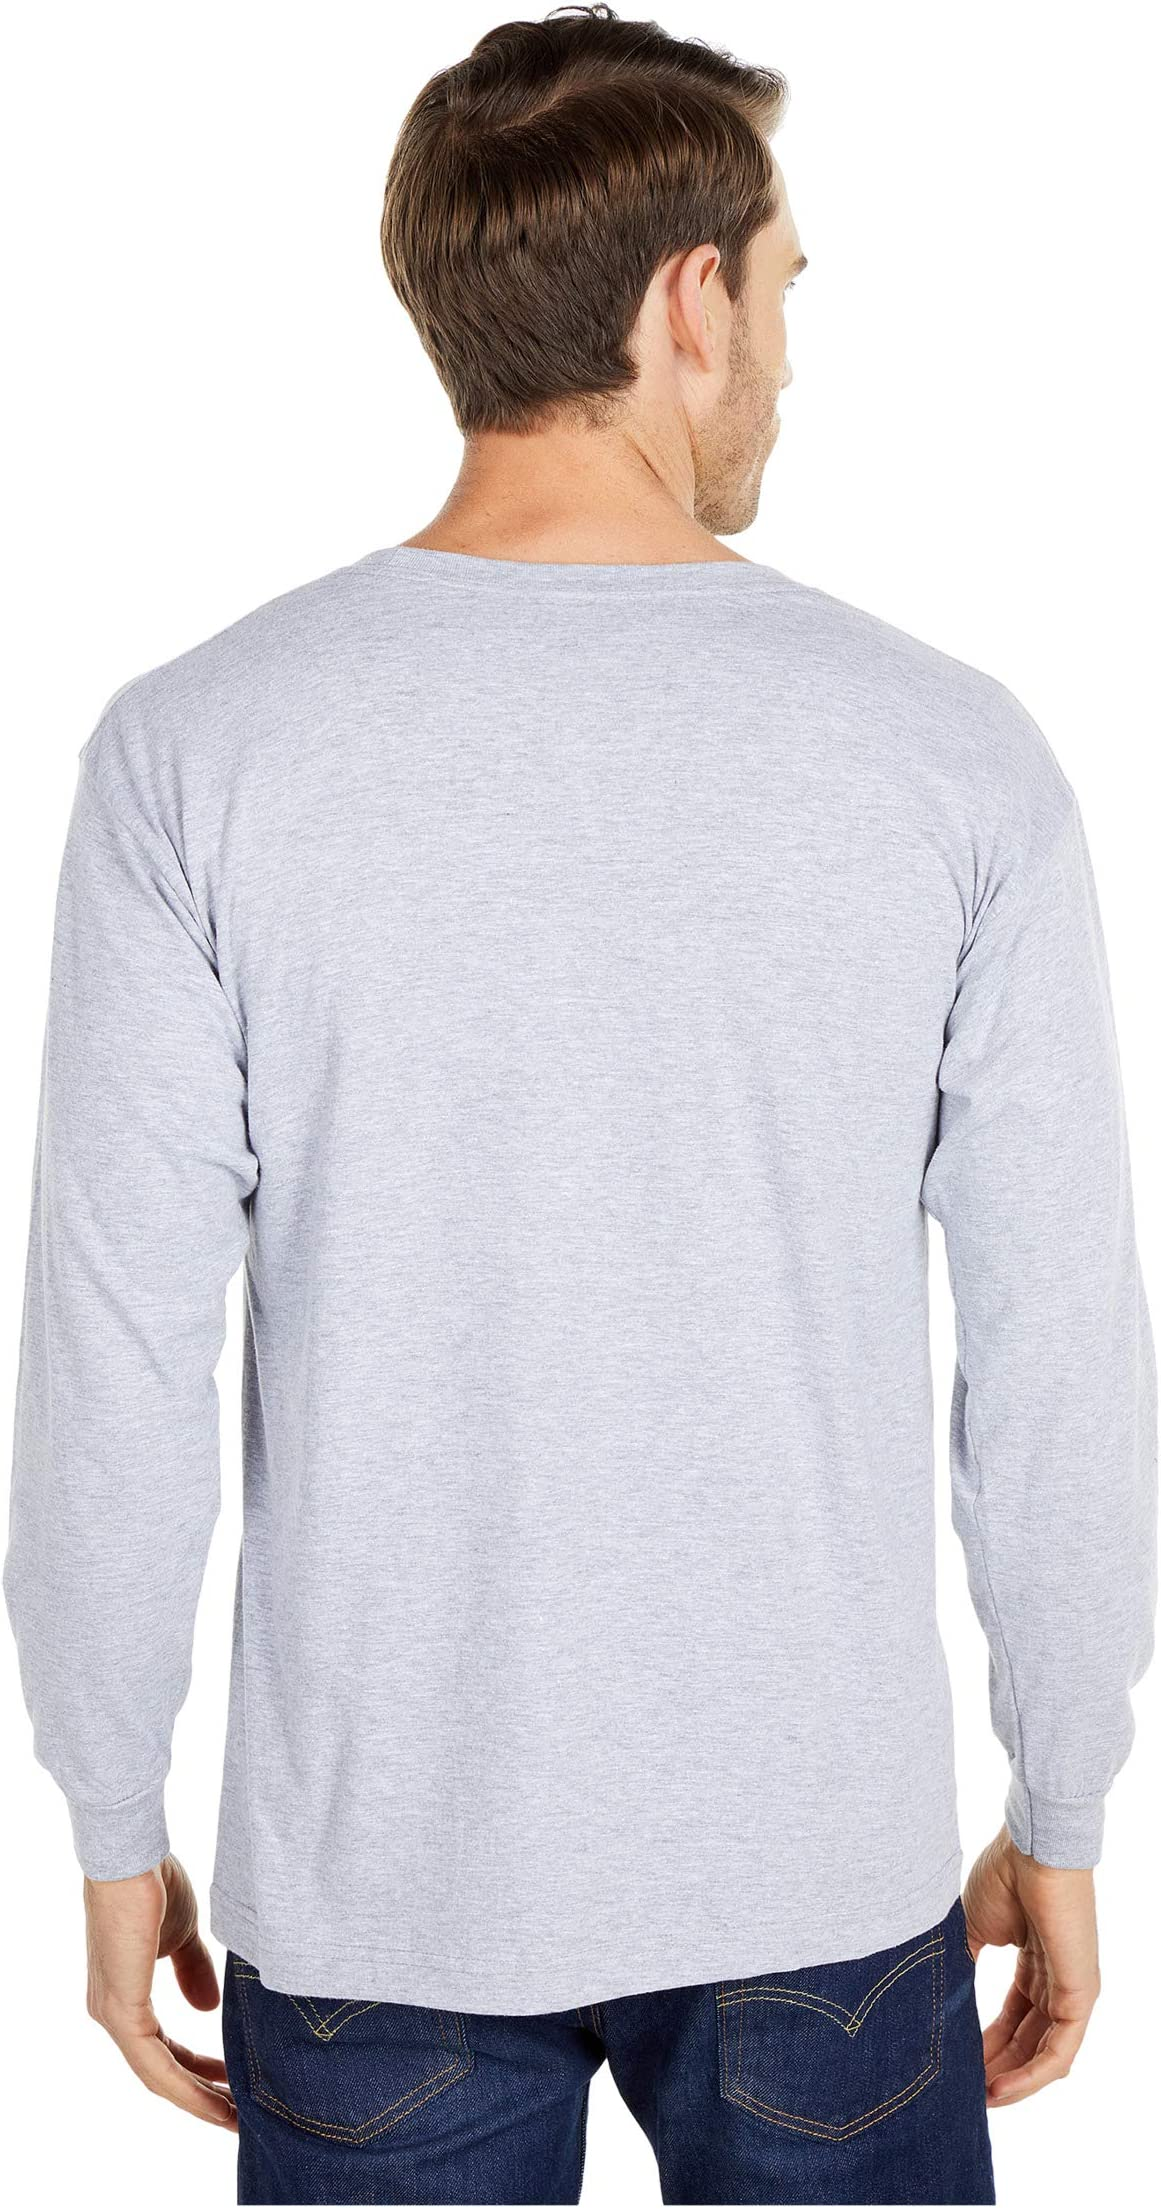 Pendleton Chief Joseph Long Sleeve Tee lvo6R